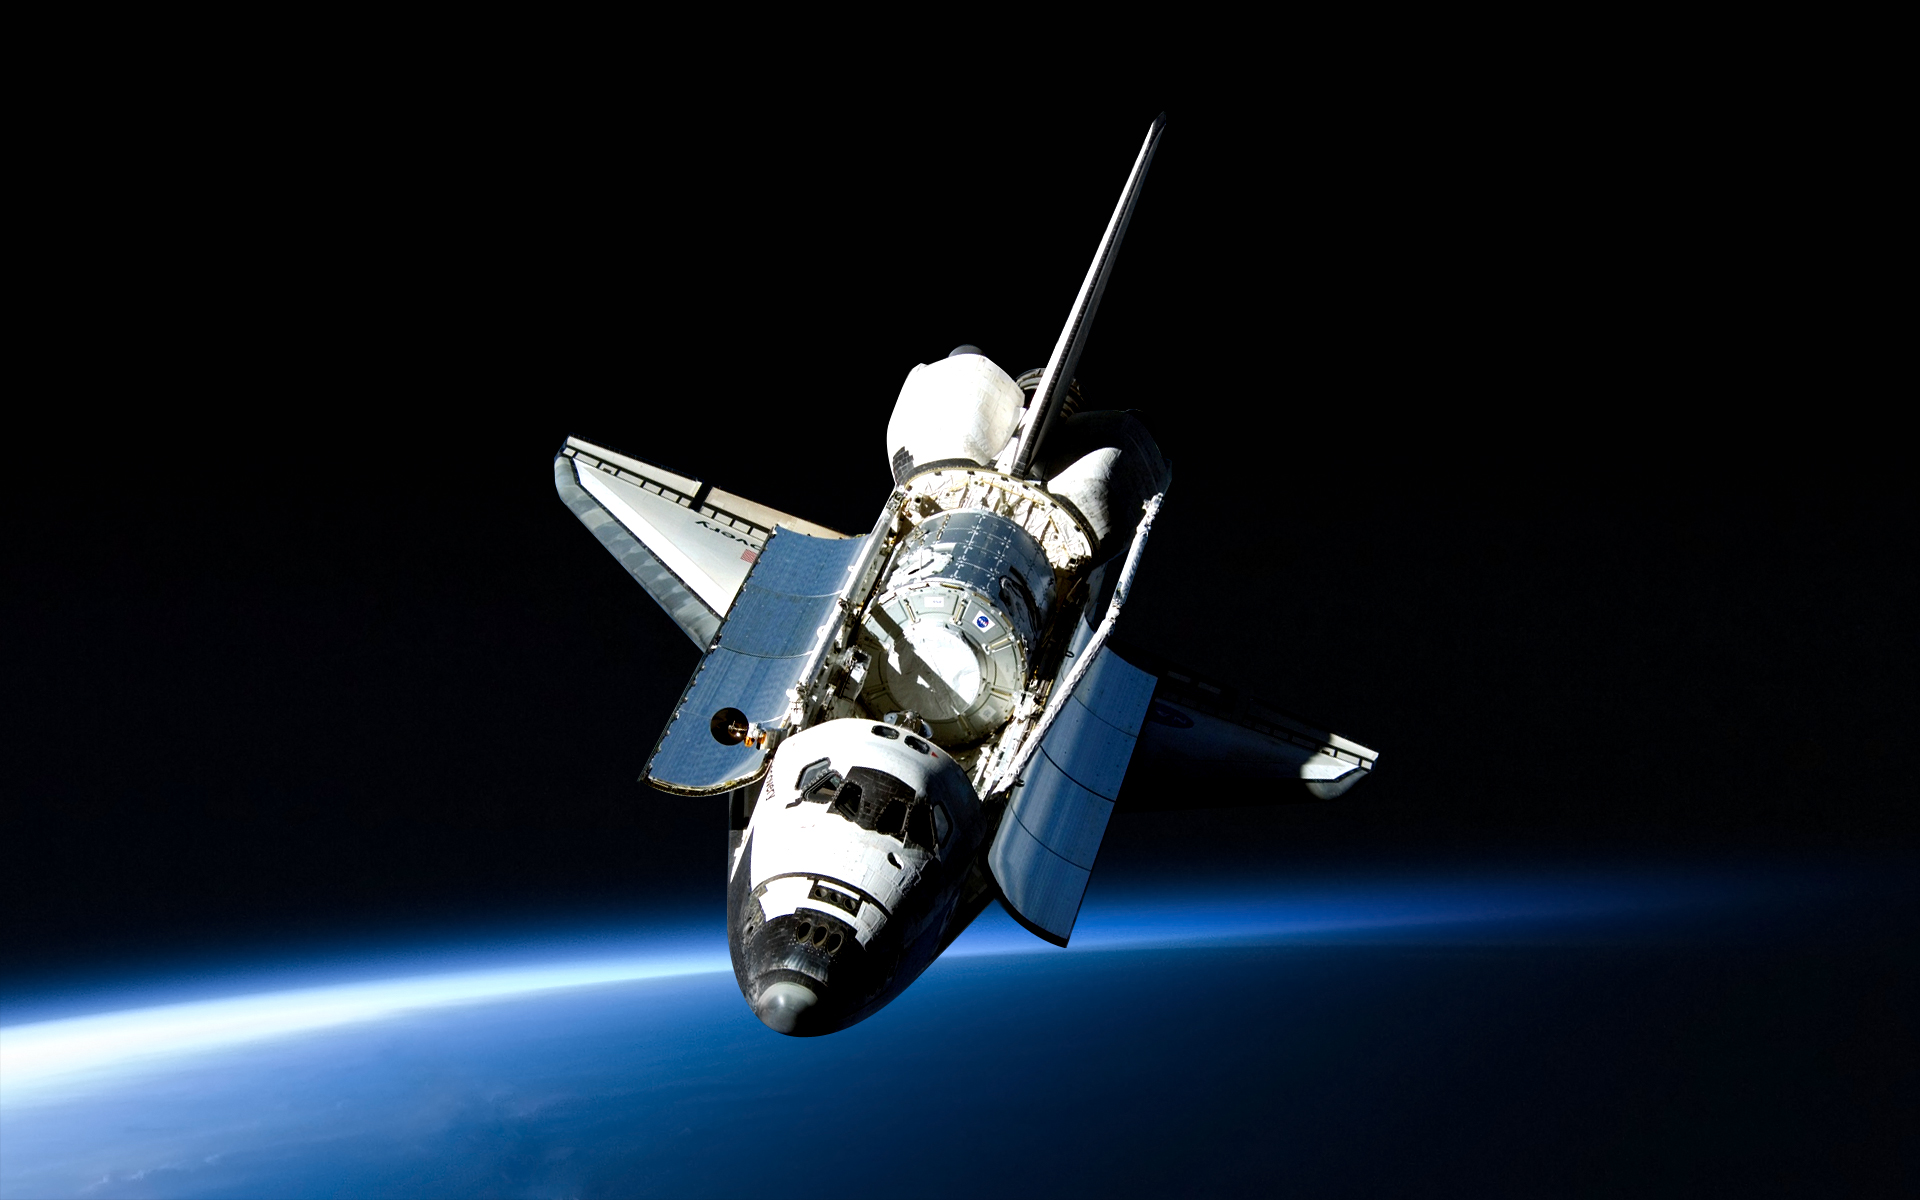 Space Shuttle Discovery posing for a great wallpaper space 1920x1200